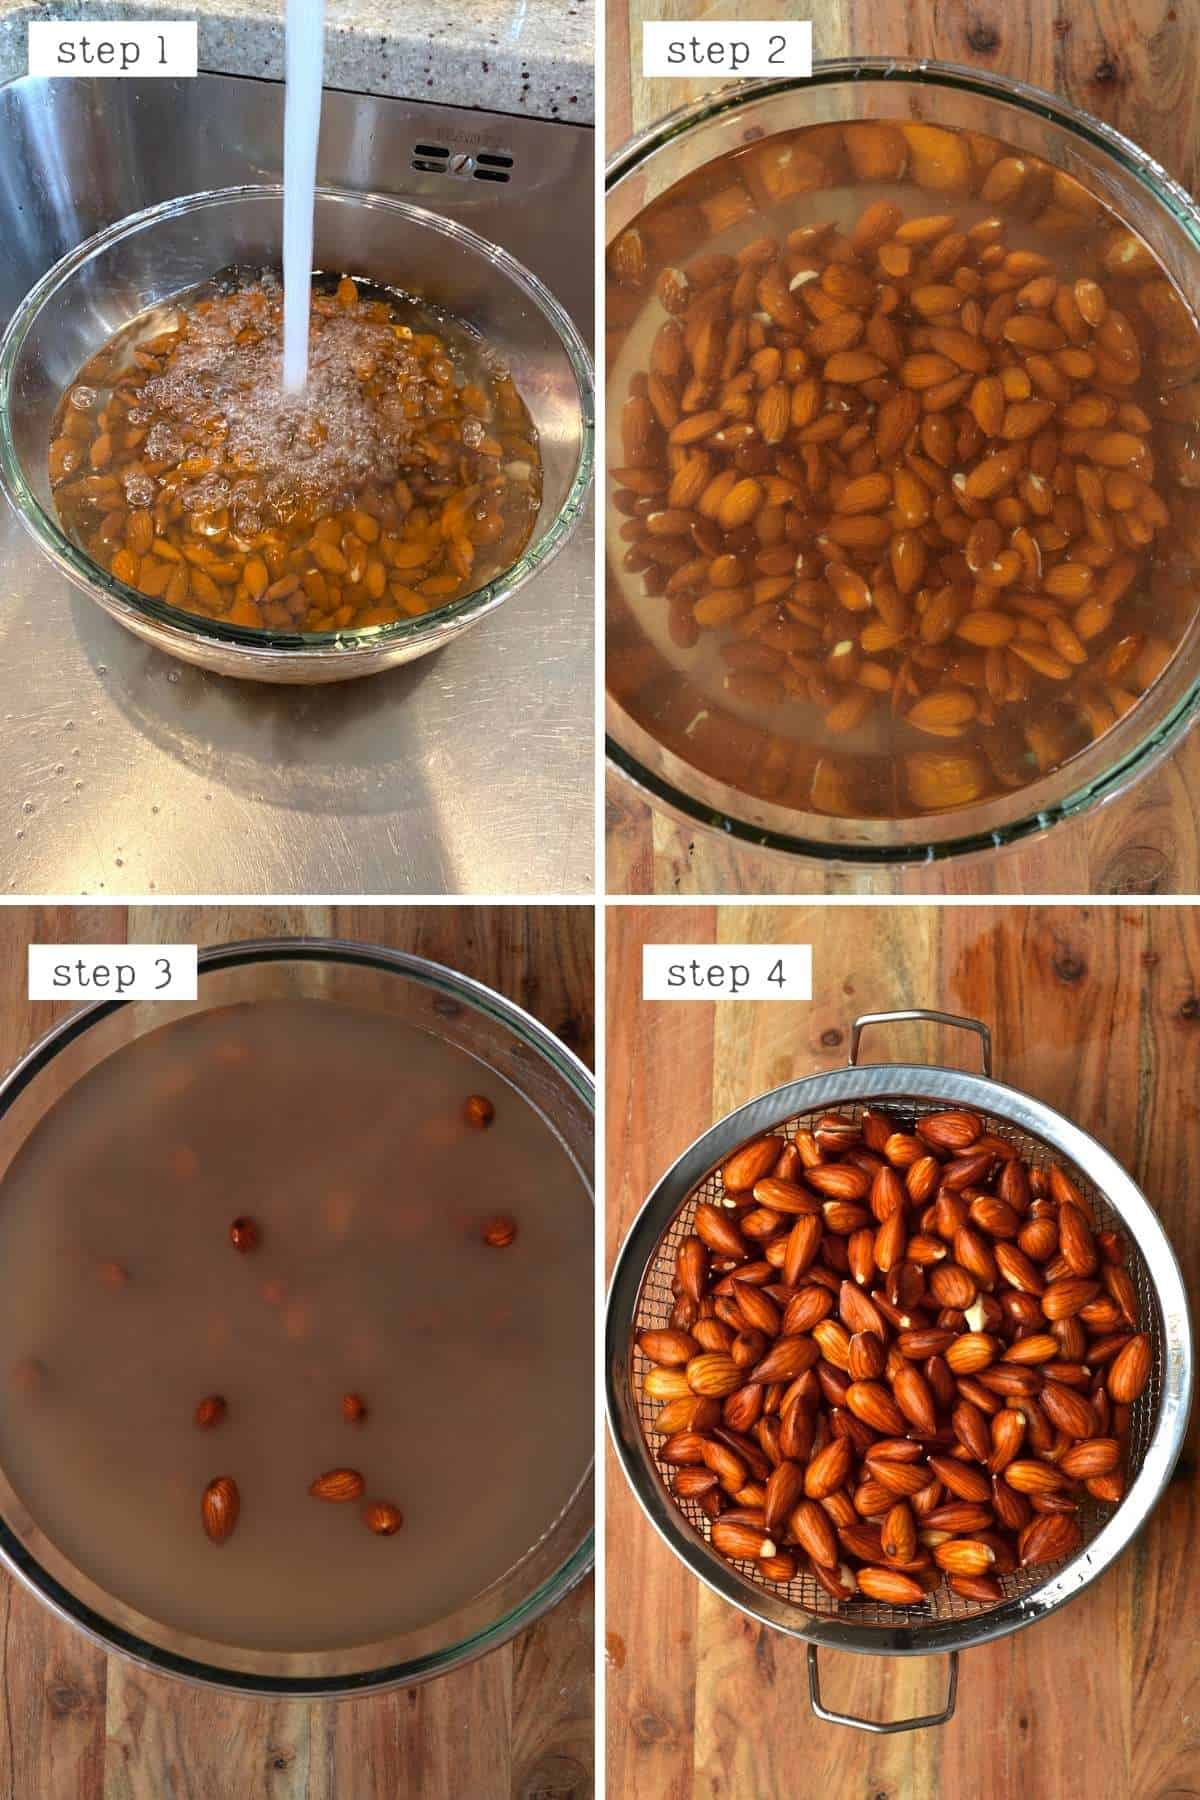 Steps for soaking almonds